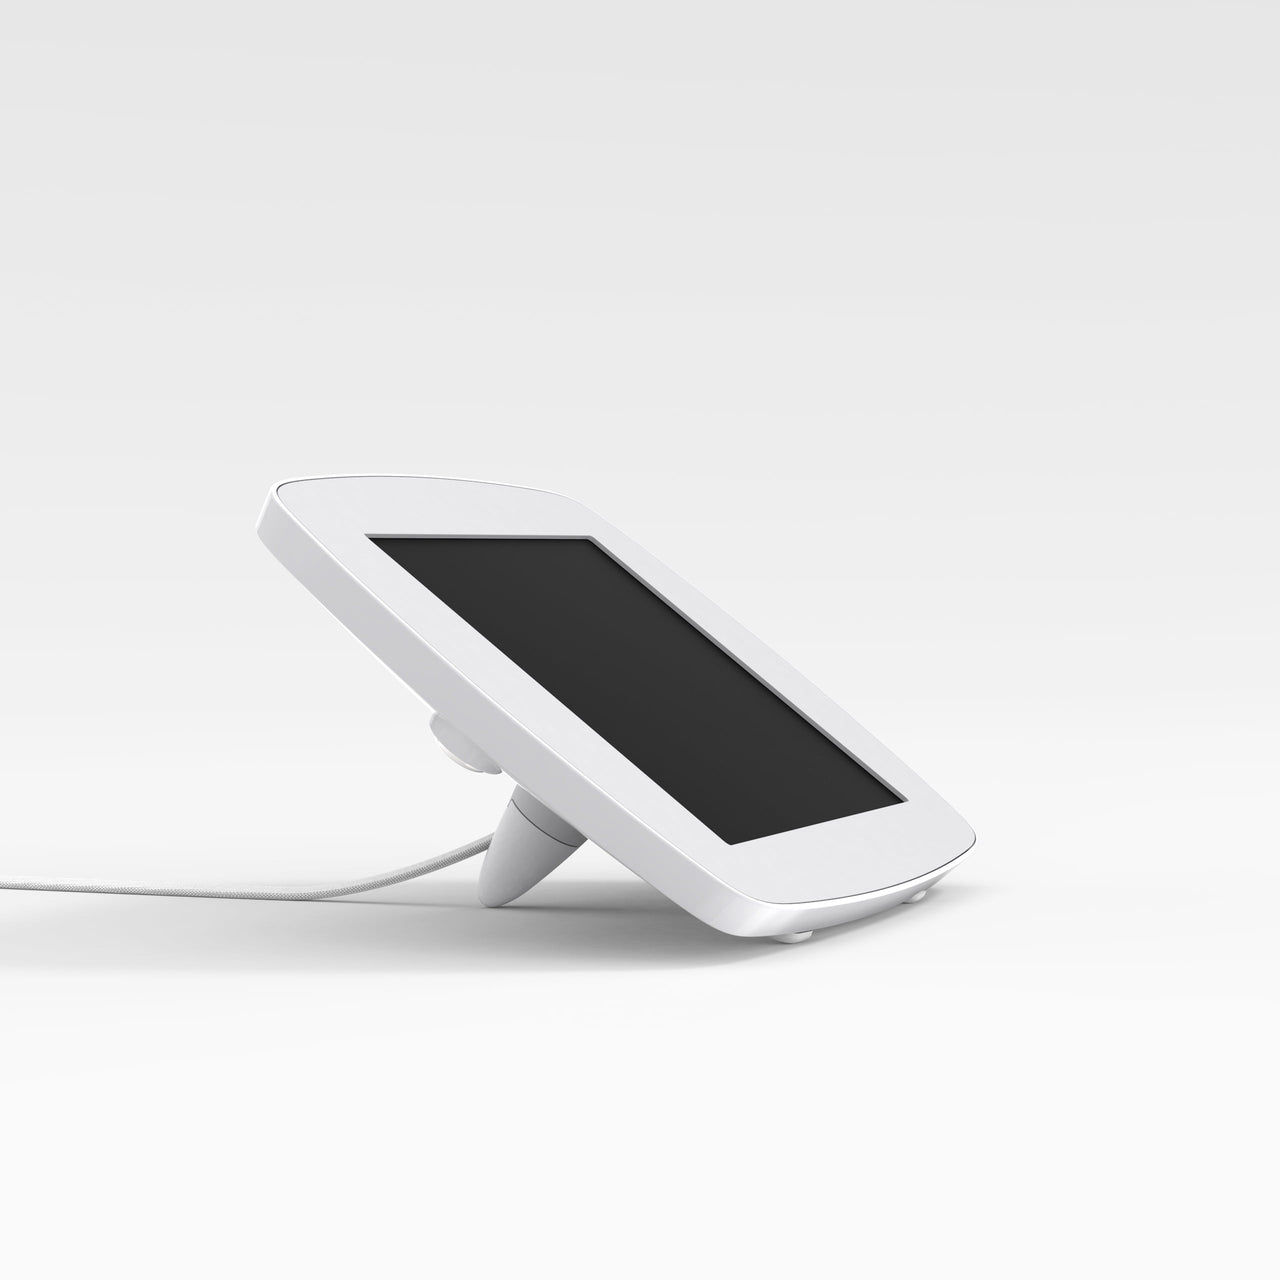 Bouncepad Lounge - A tethered tablet and iPad enclosure in white.